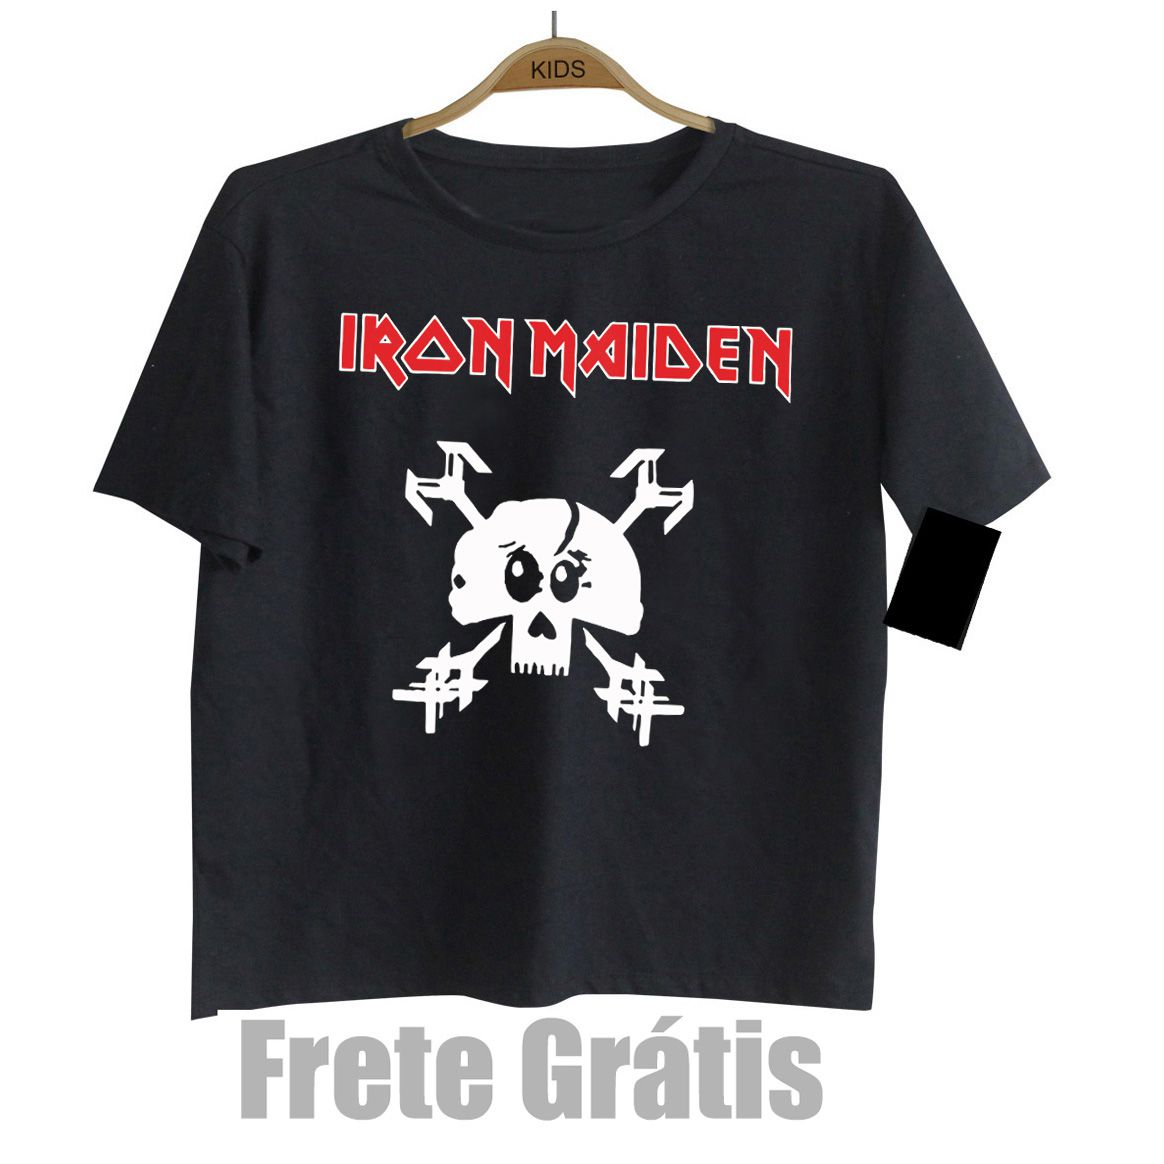 Camiseta Rock Infantil IRON MAIDEN - Skull - Black  - Baby Monster S/A